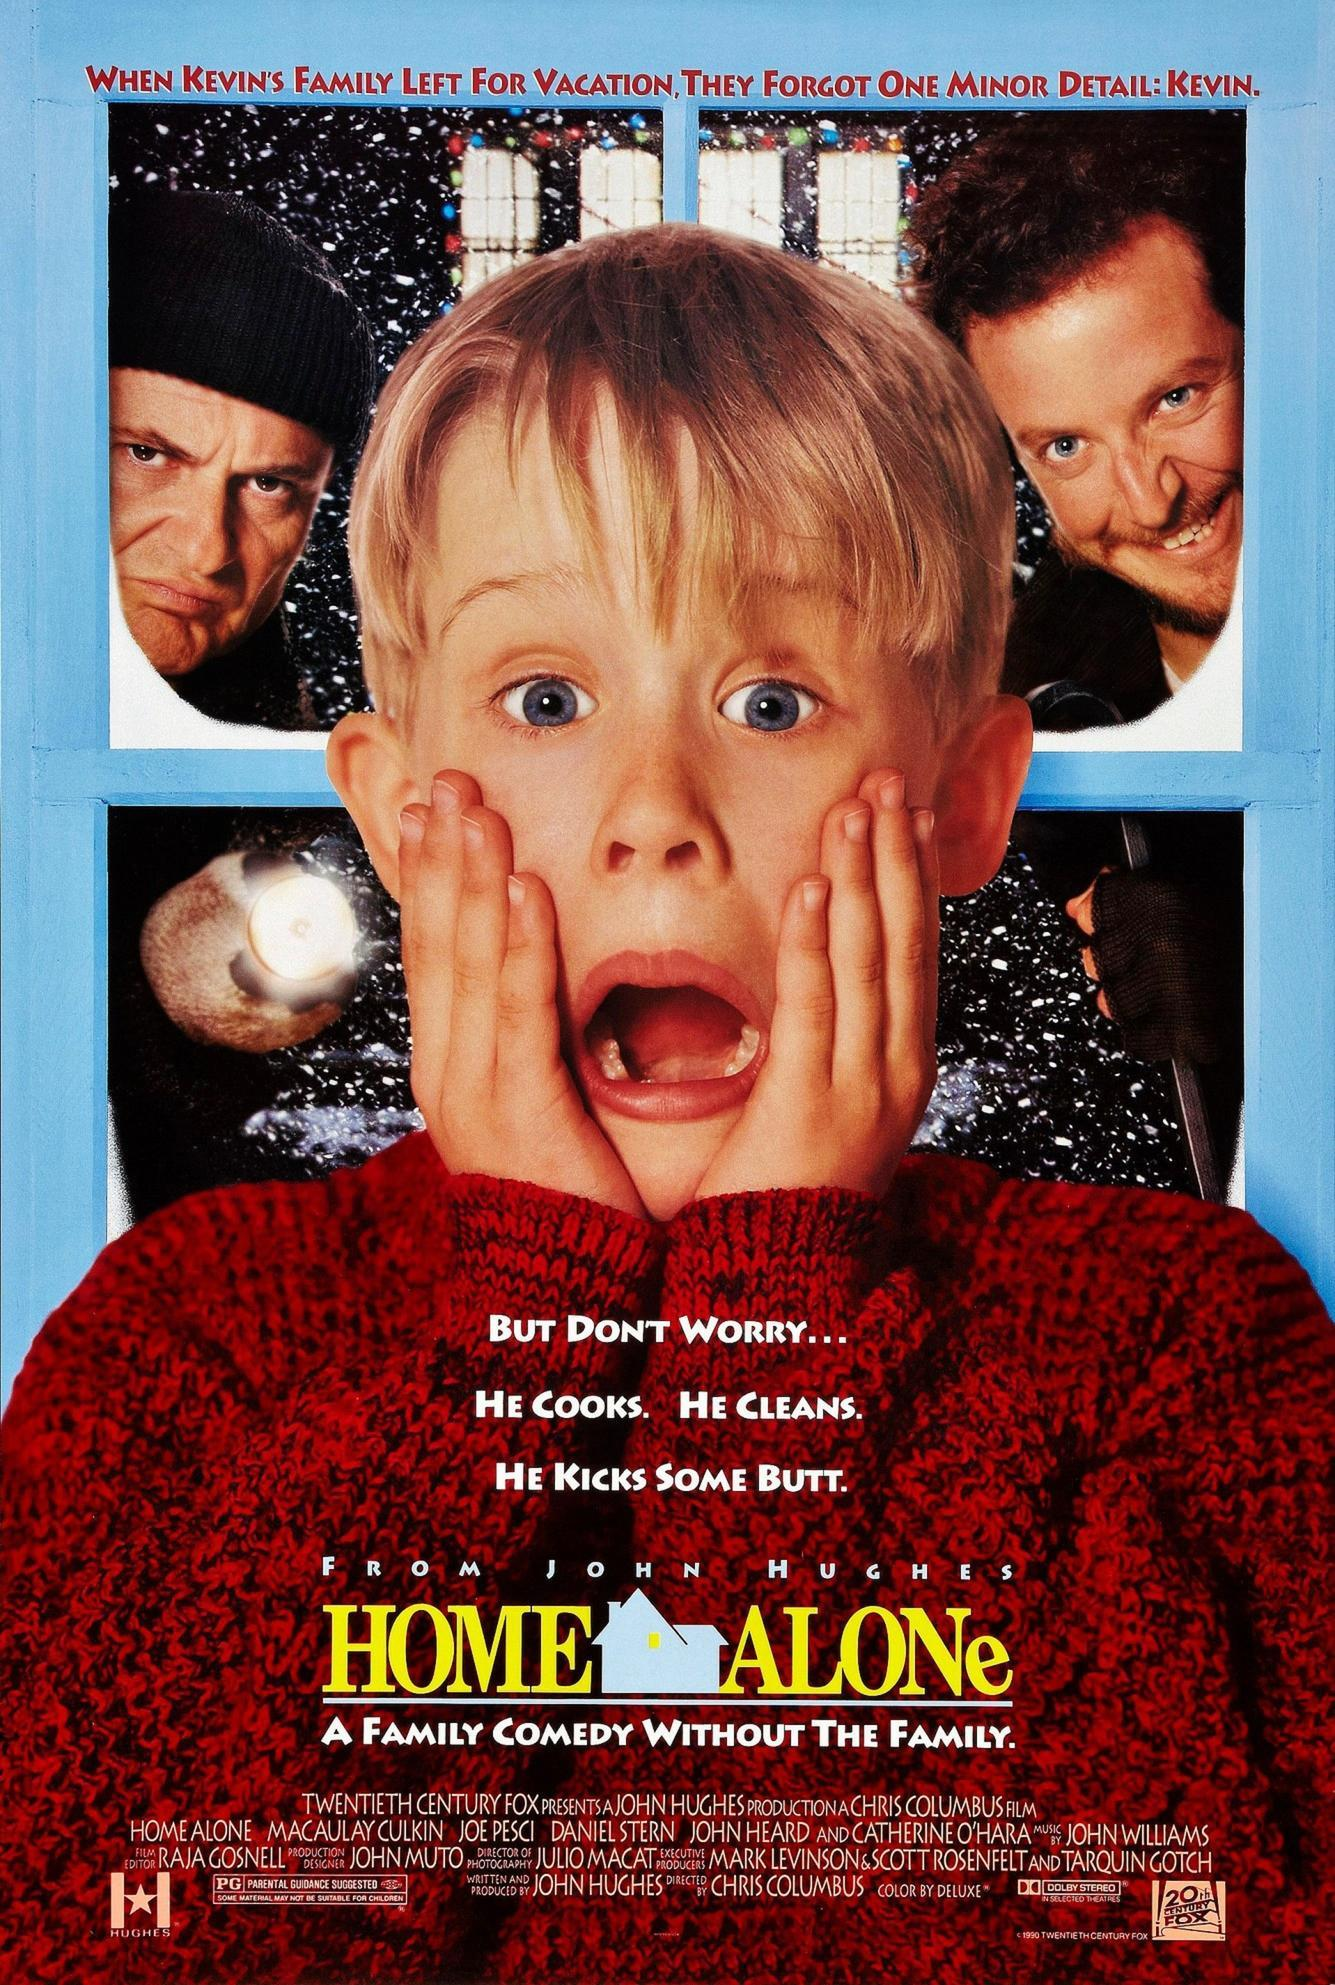 The cover art for Home Alone